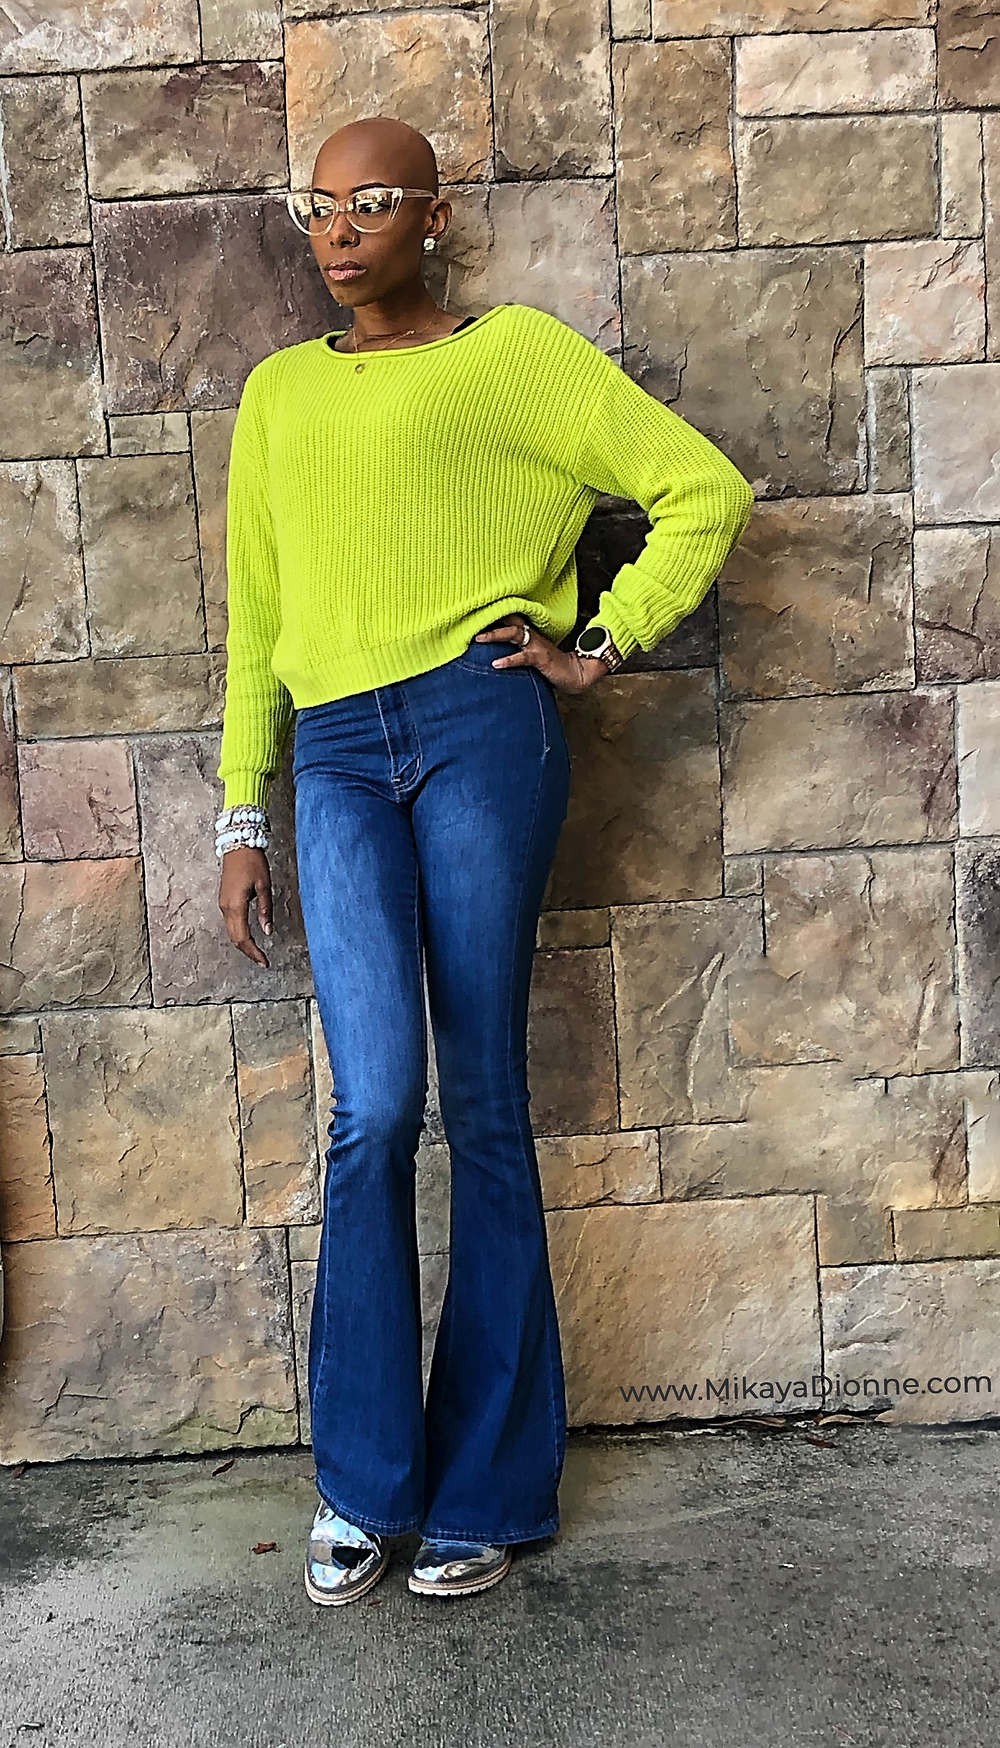 Get the scoop on this #GlambitionStyle roundup of neon green spring excitement and flared bottom jeans. Mikaya Dionne shares details on pieces she coordinated to bring this ensemble together.